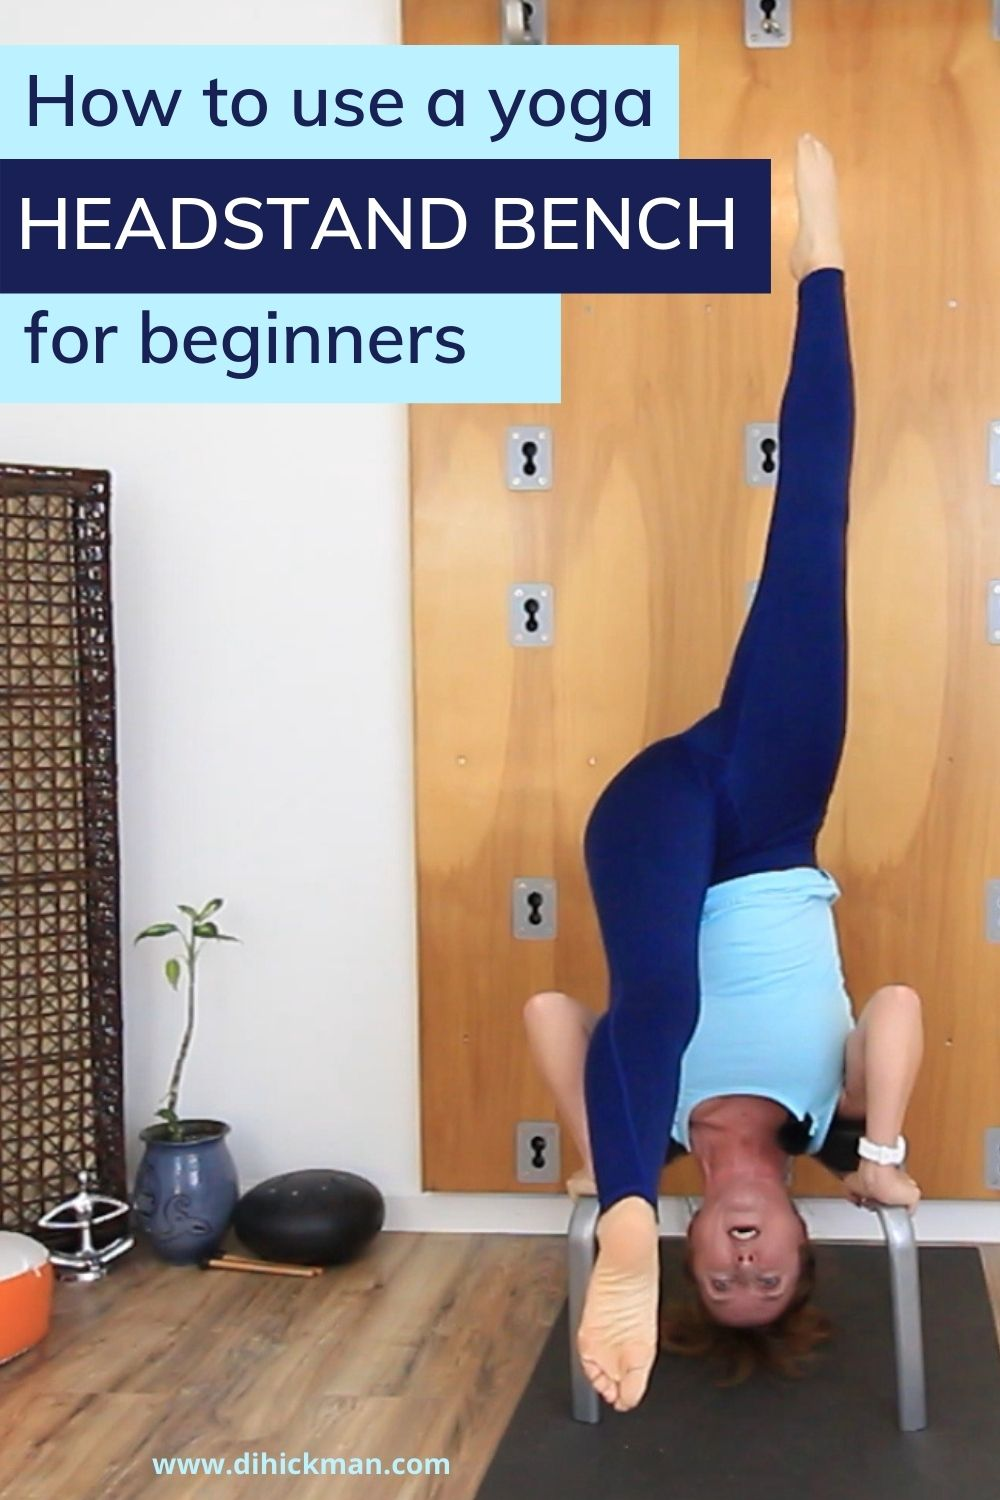 How to use a yoga headstand bench for beginners